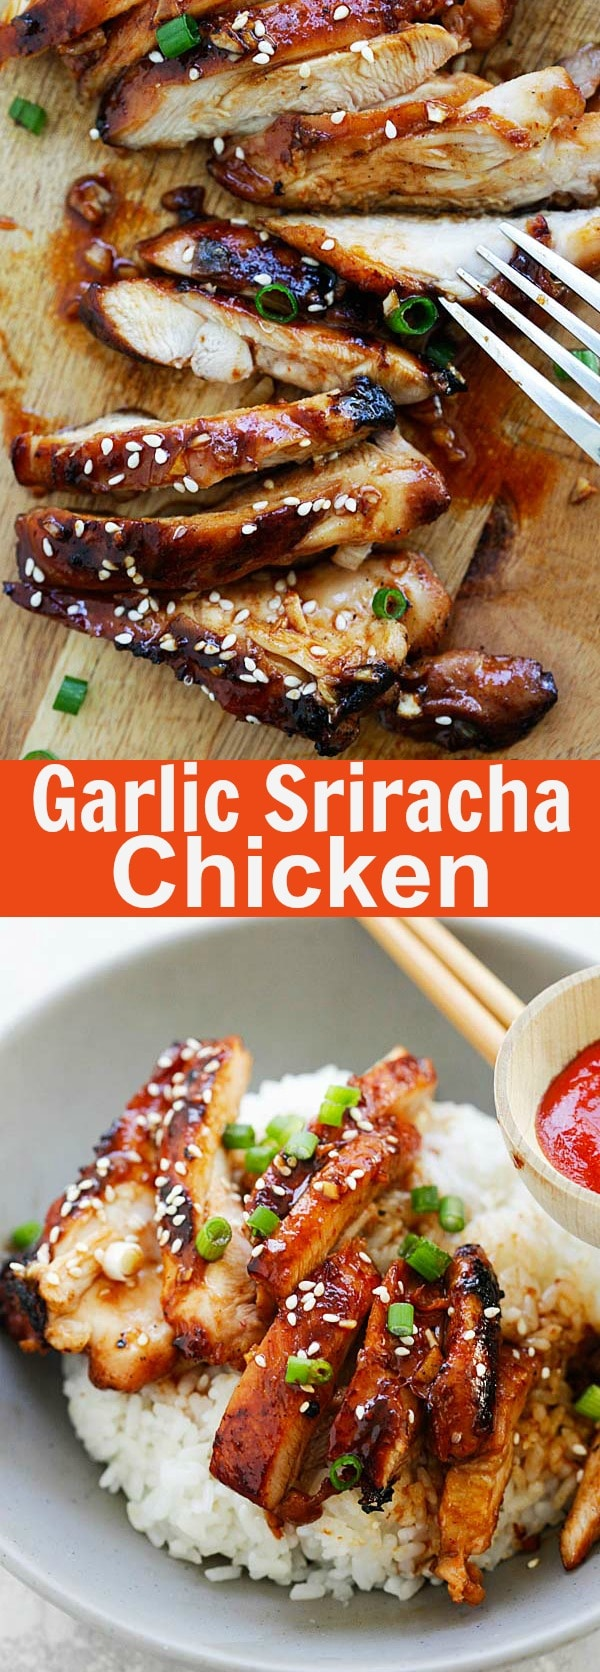 Garlic Sriracha Chicken - the juiciest oven baked chicken recipe with a mouthwatering Garlic Sriracha marinade. So delicious | rasamalaysia.com